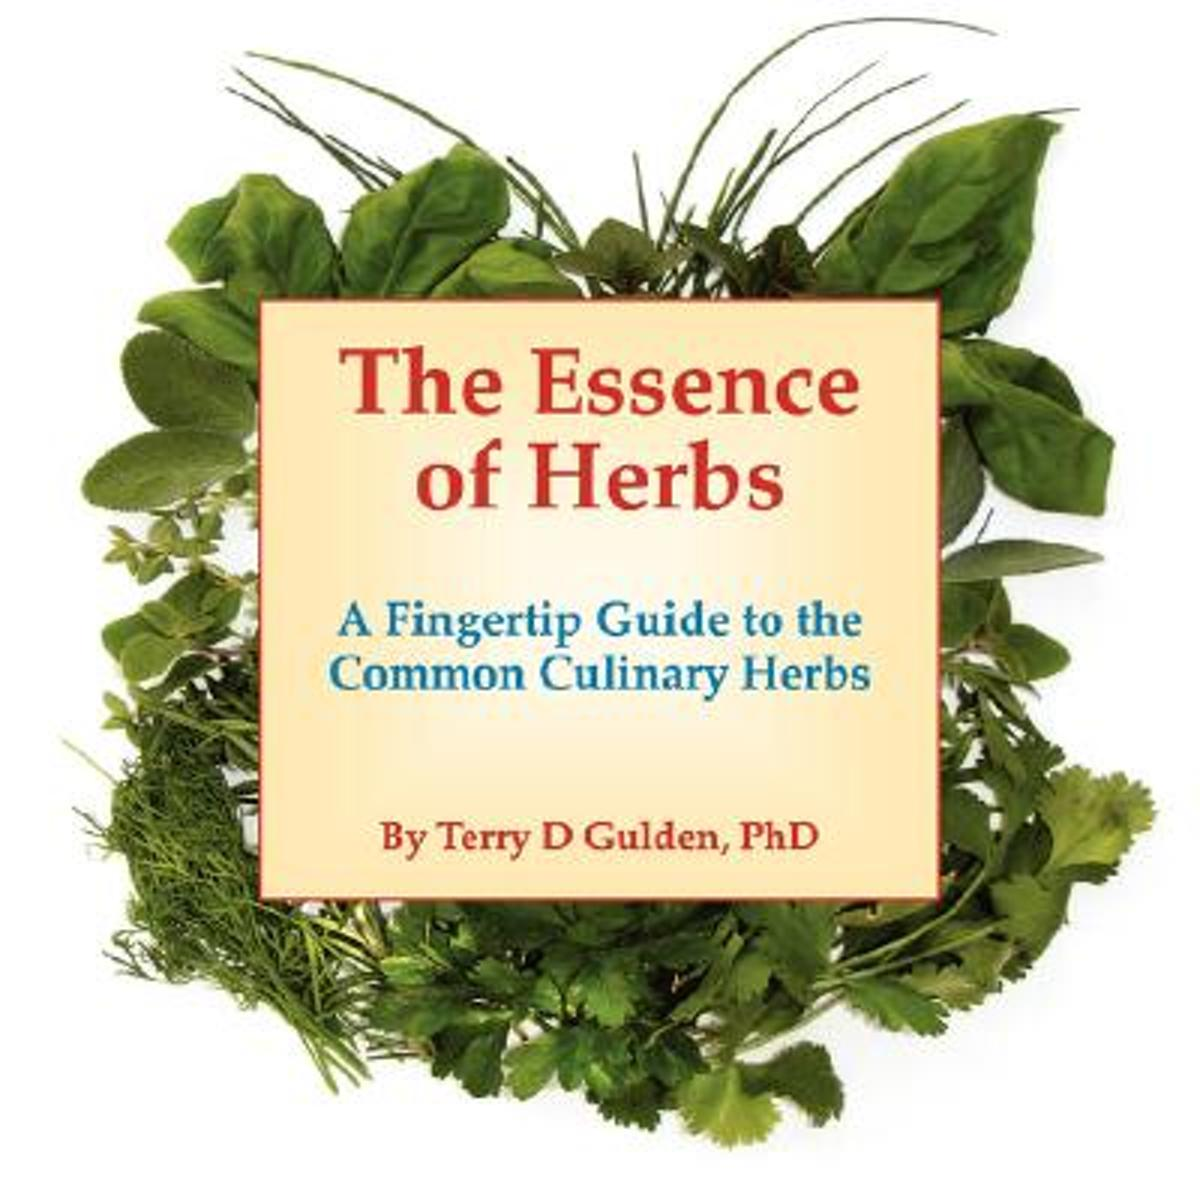 The Essence of Herbs